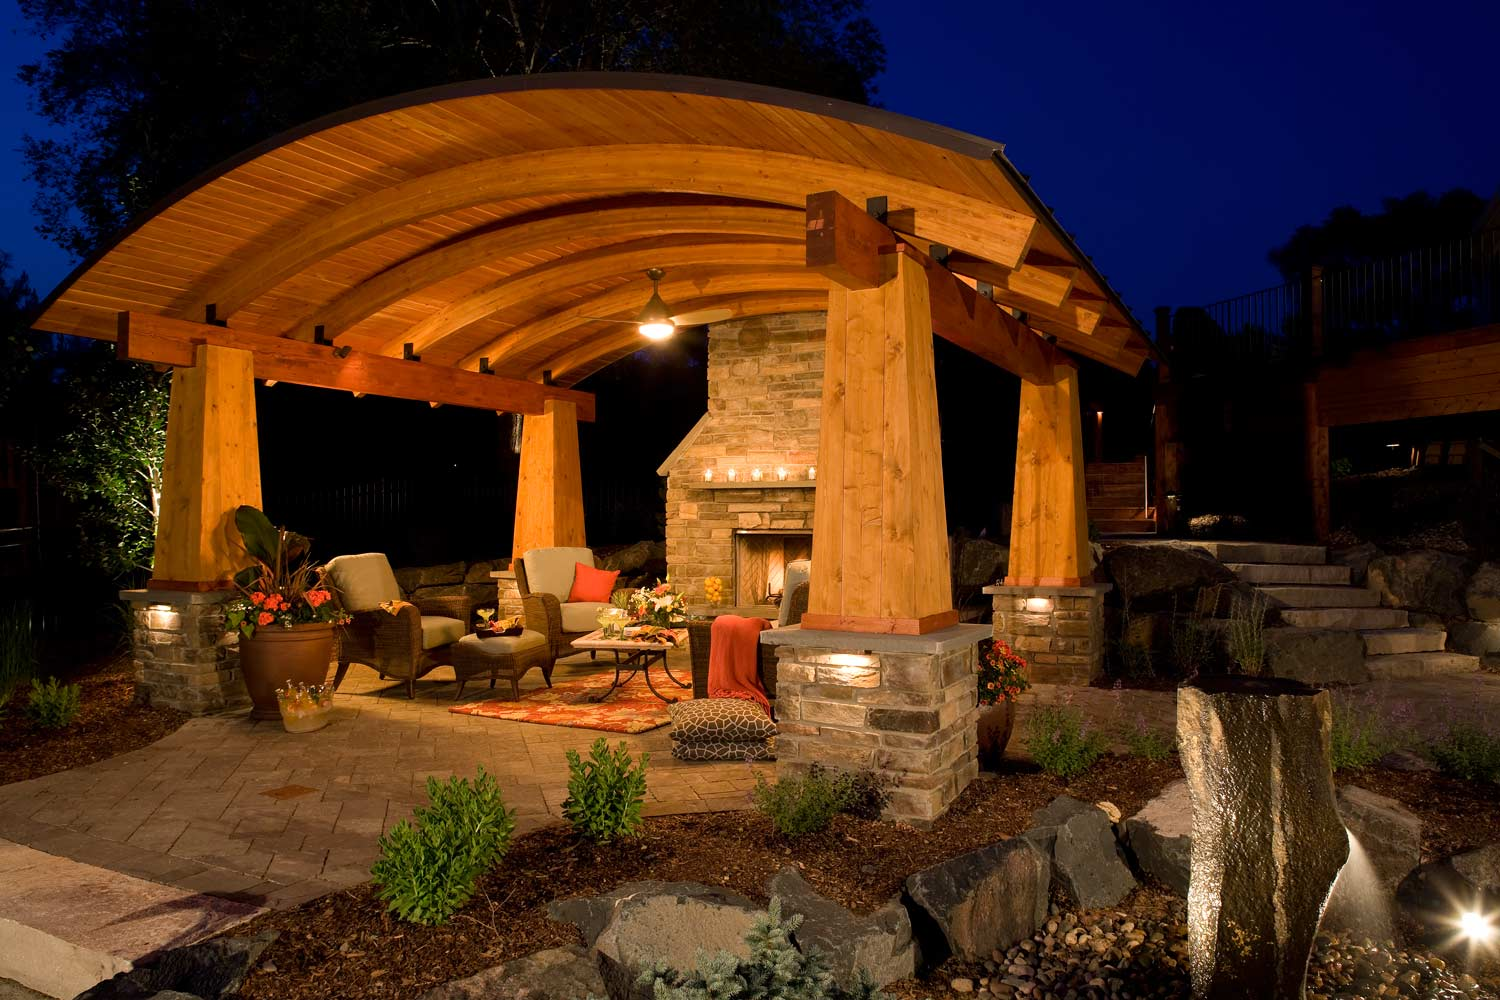 Outdoor living room with elegant and arching architectural structure design in Woodbury, MN